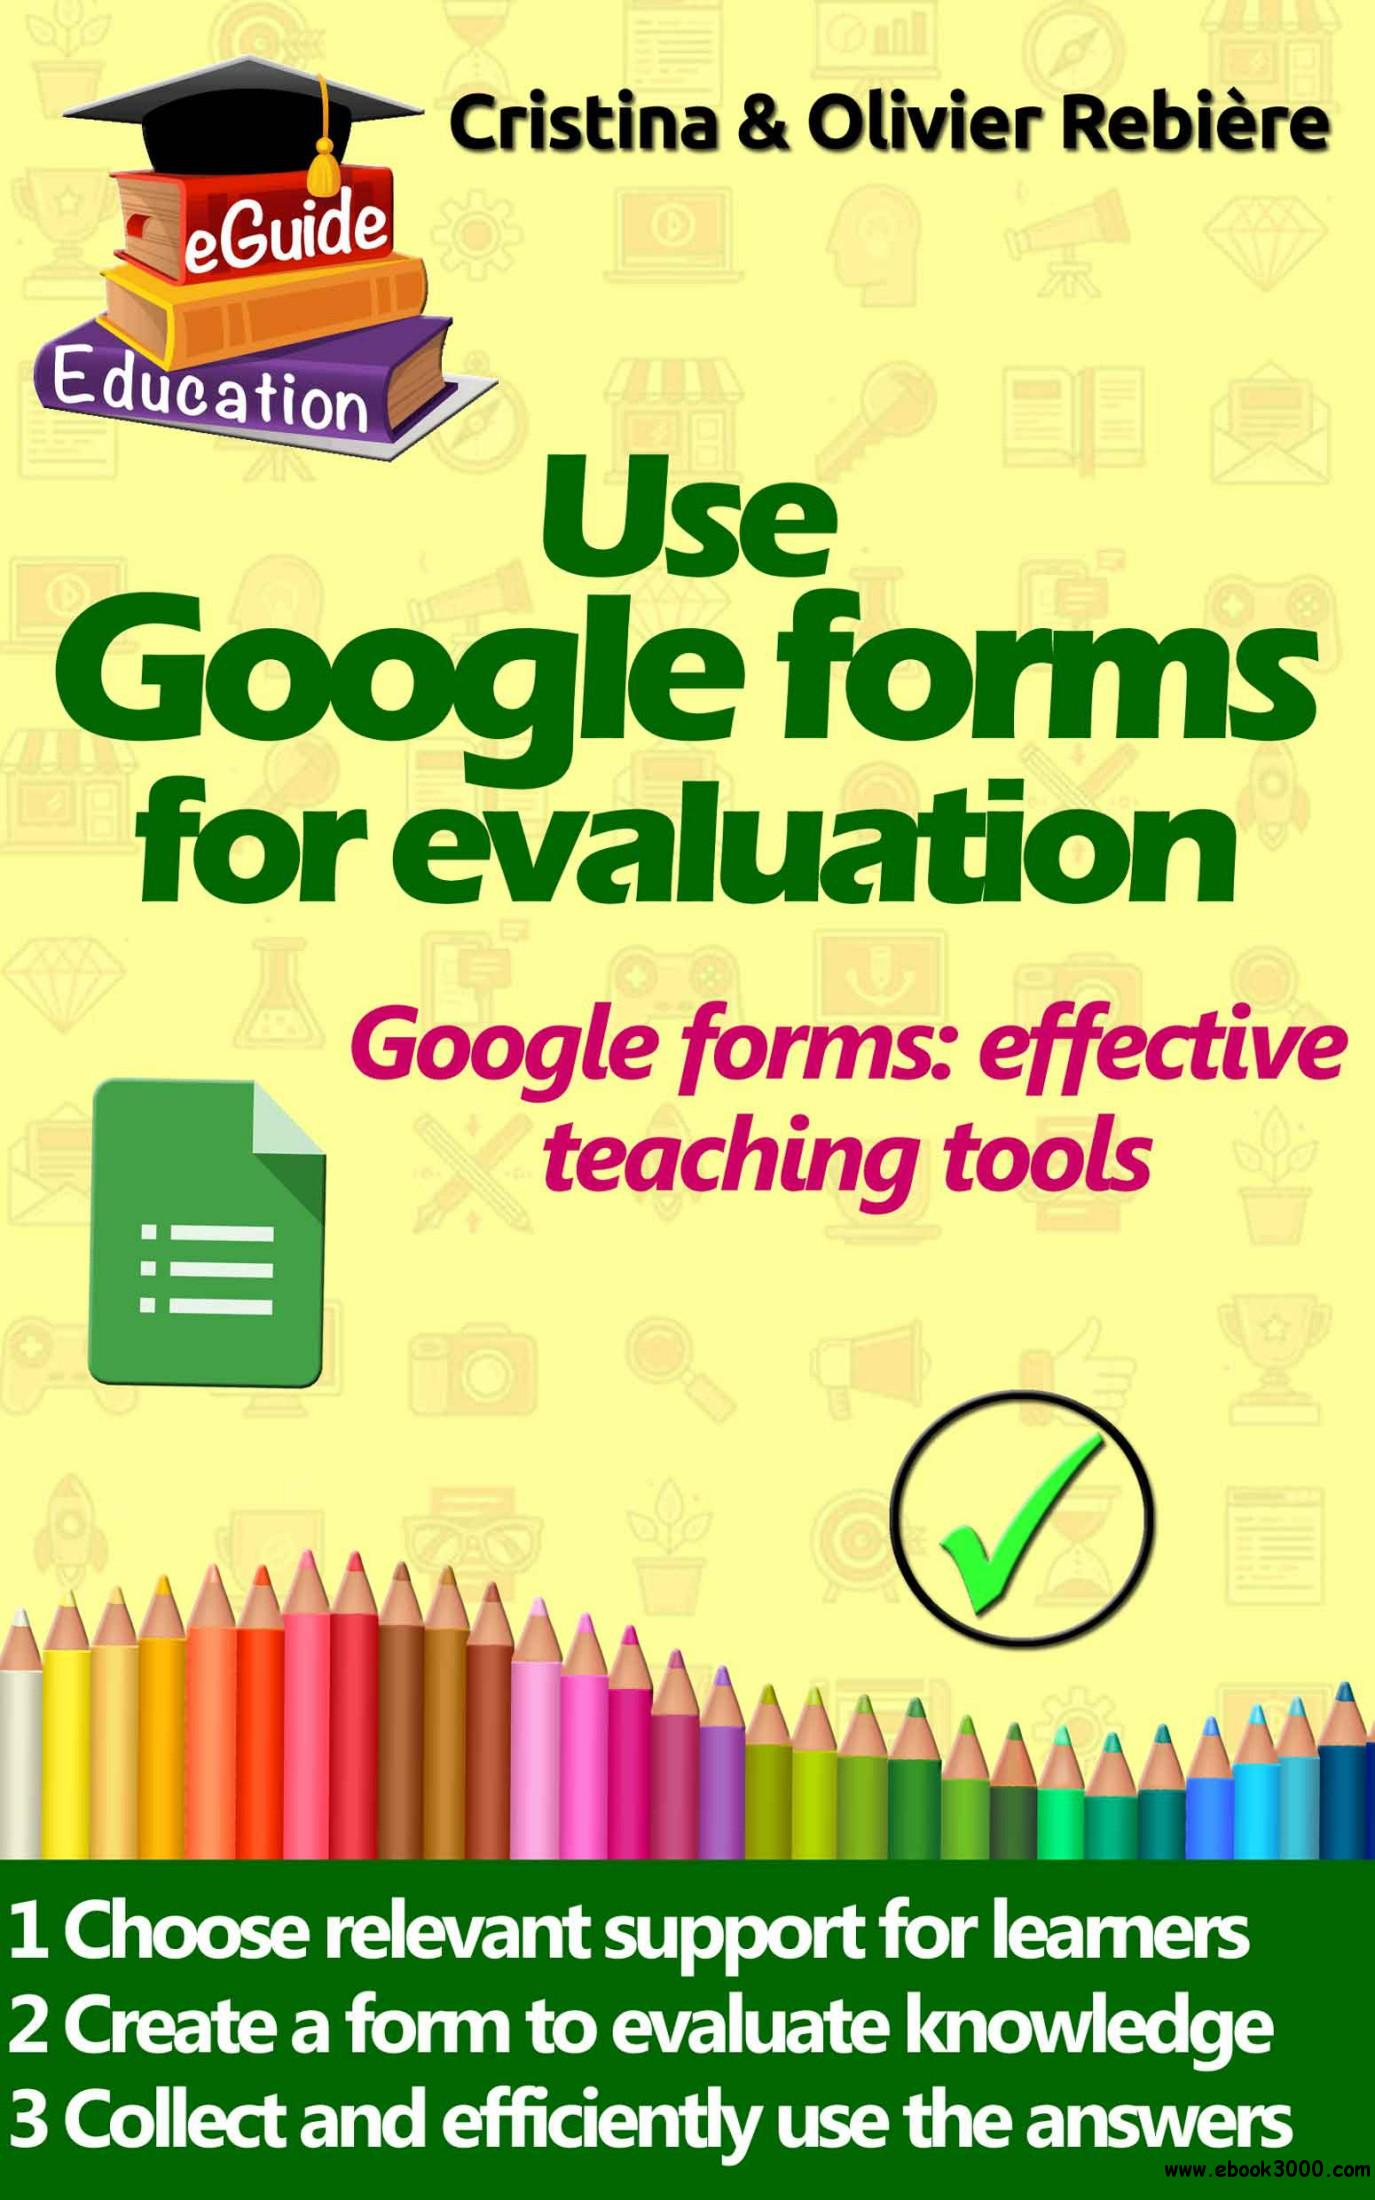 Use Google forms for evaluation: Google forms and quizzes as effective educational tools (eGuide Education)